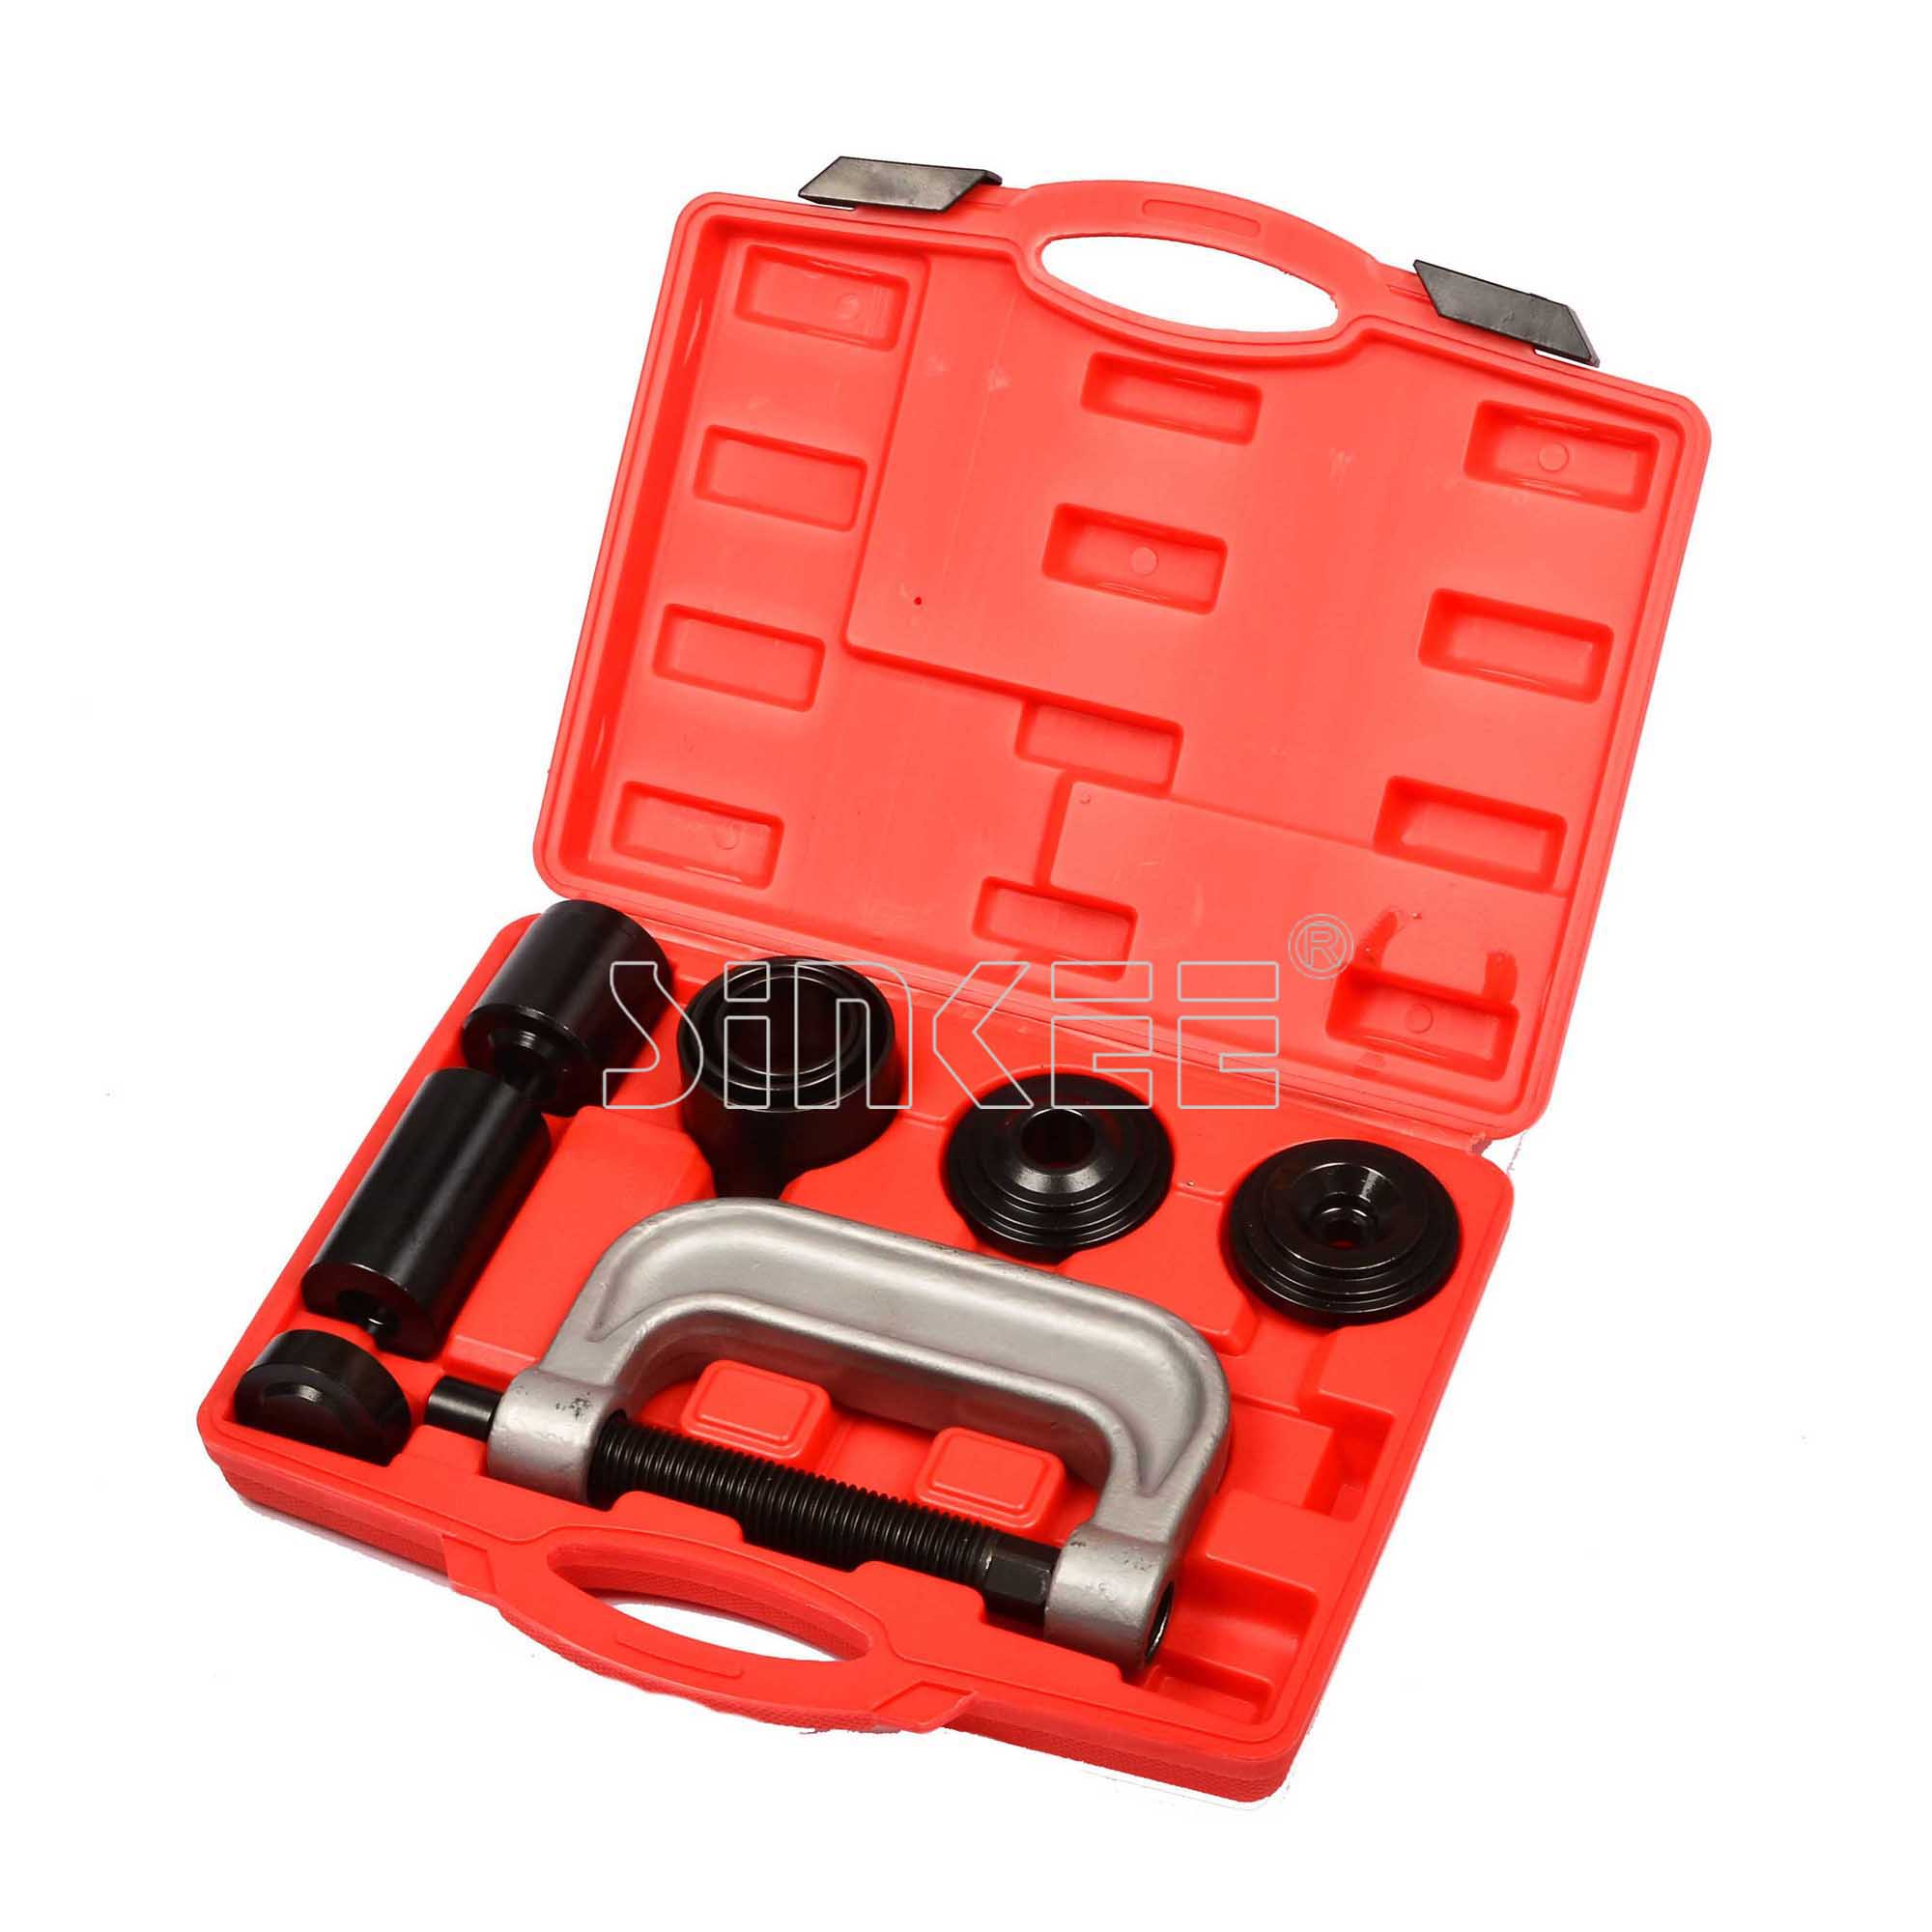 4 in 1 Ball Joint Service Tool Kit C Frame Press 2WD 4WD Vehicles Truck Brake